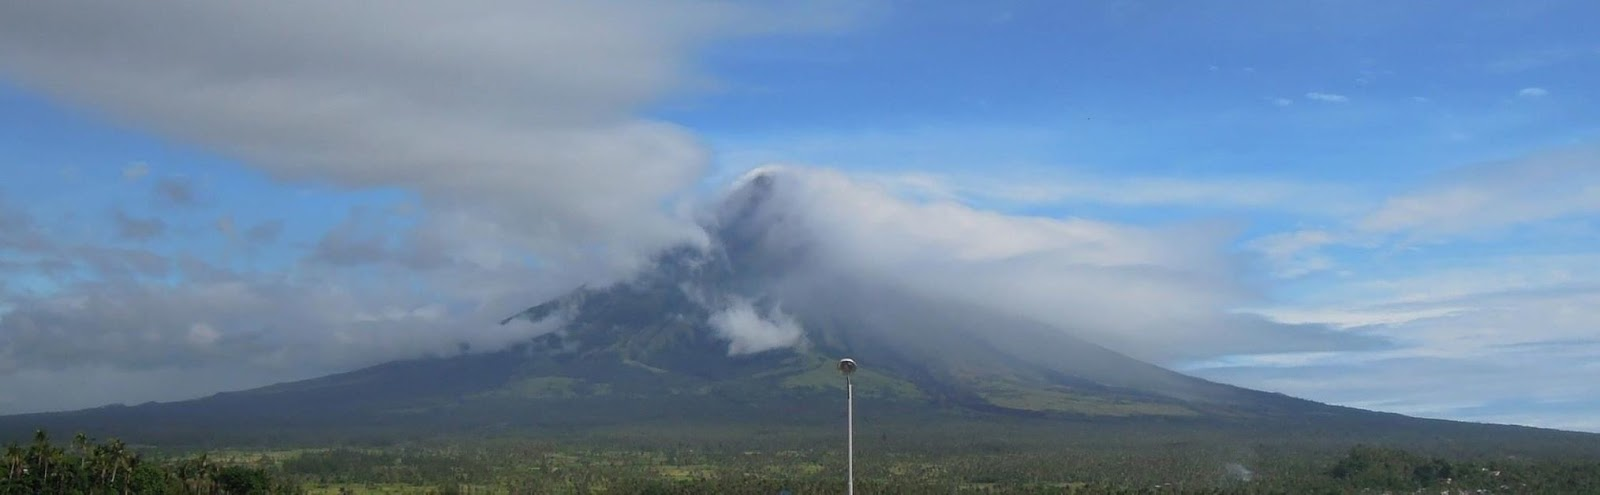 Mayon Volcano as seen from Lignon Hill in Albay